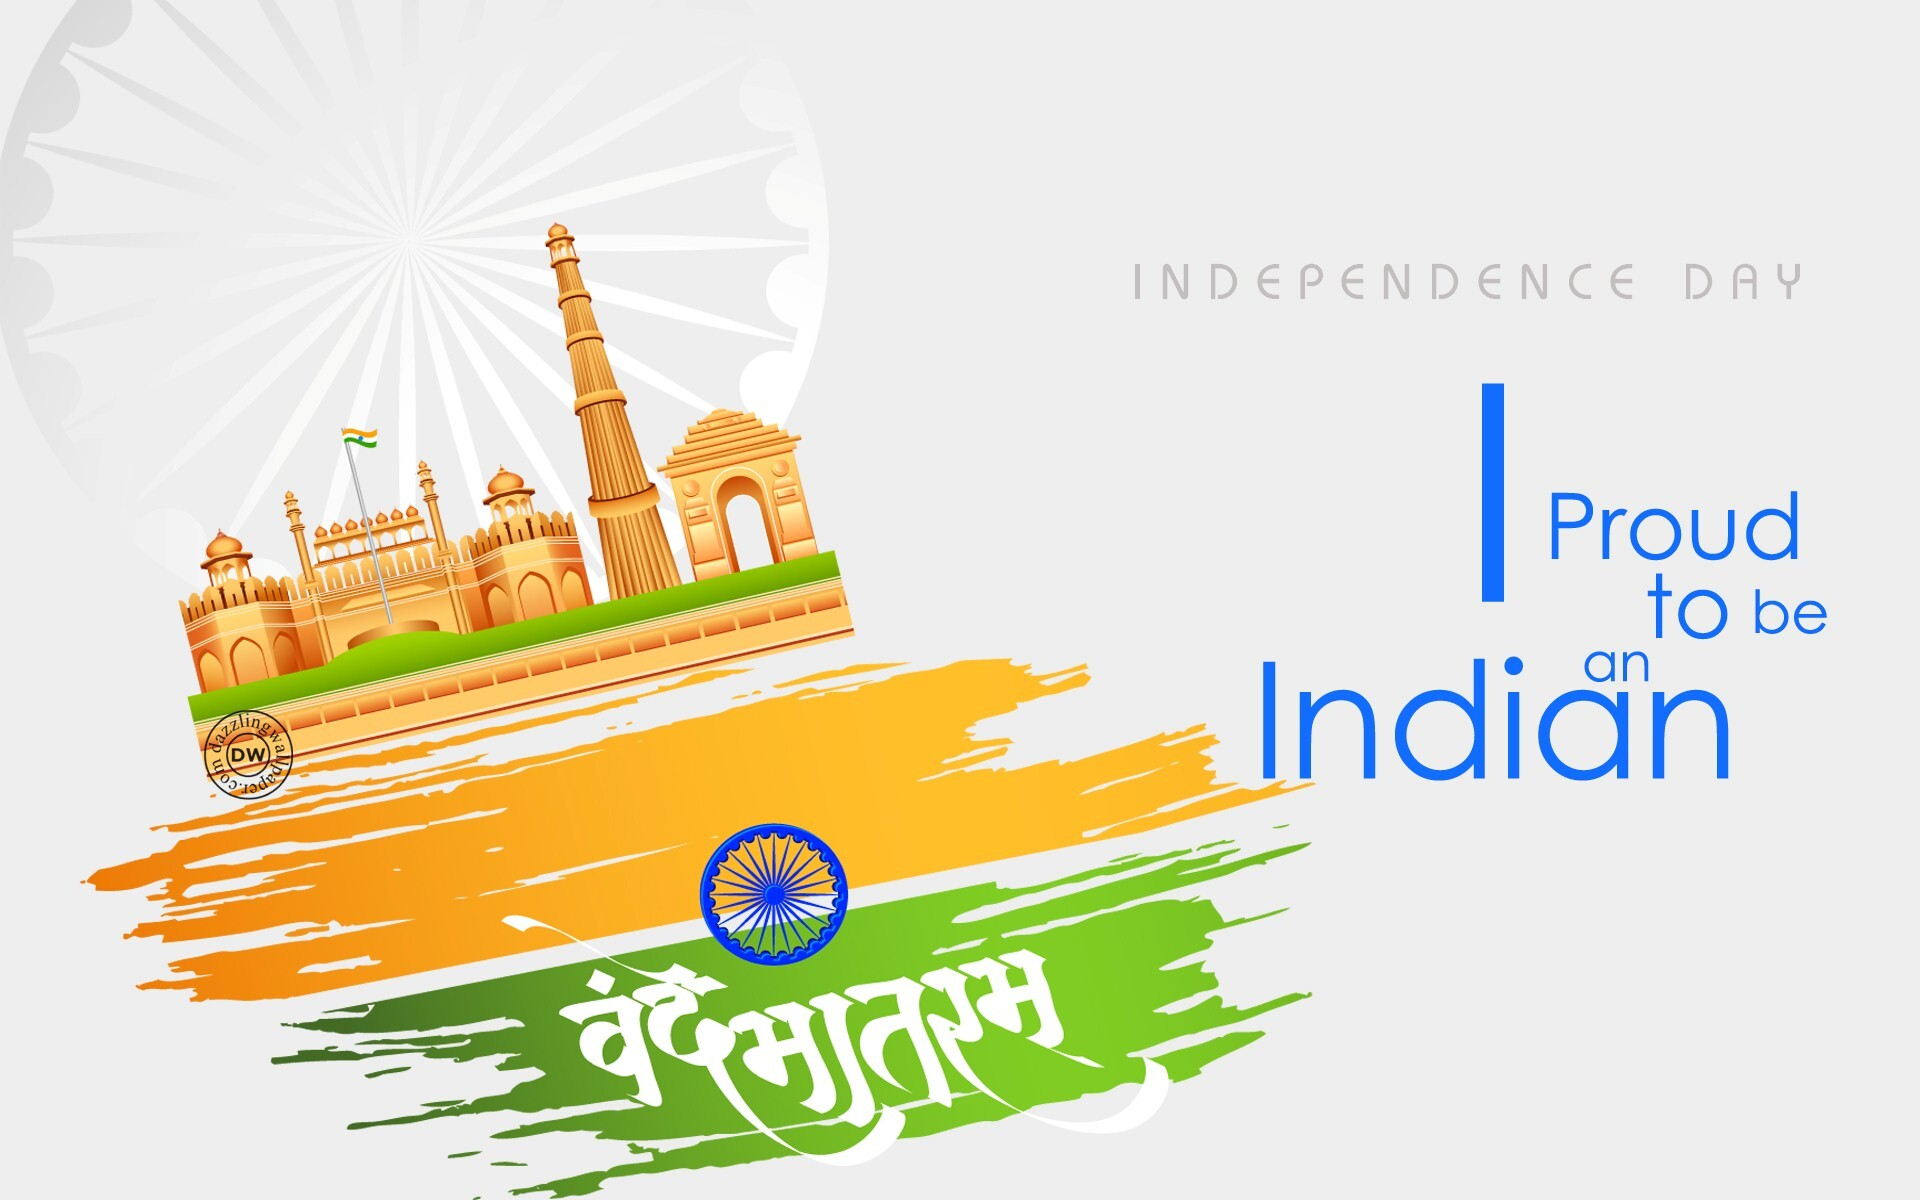 Bhartiya Independence Day HD Wallpapers for free download